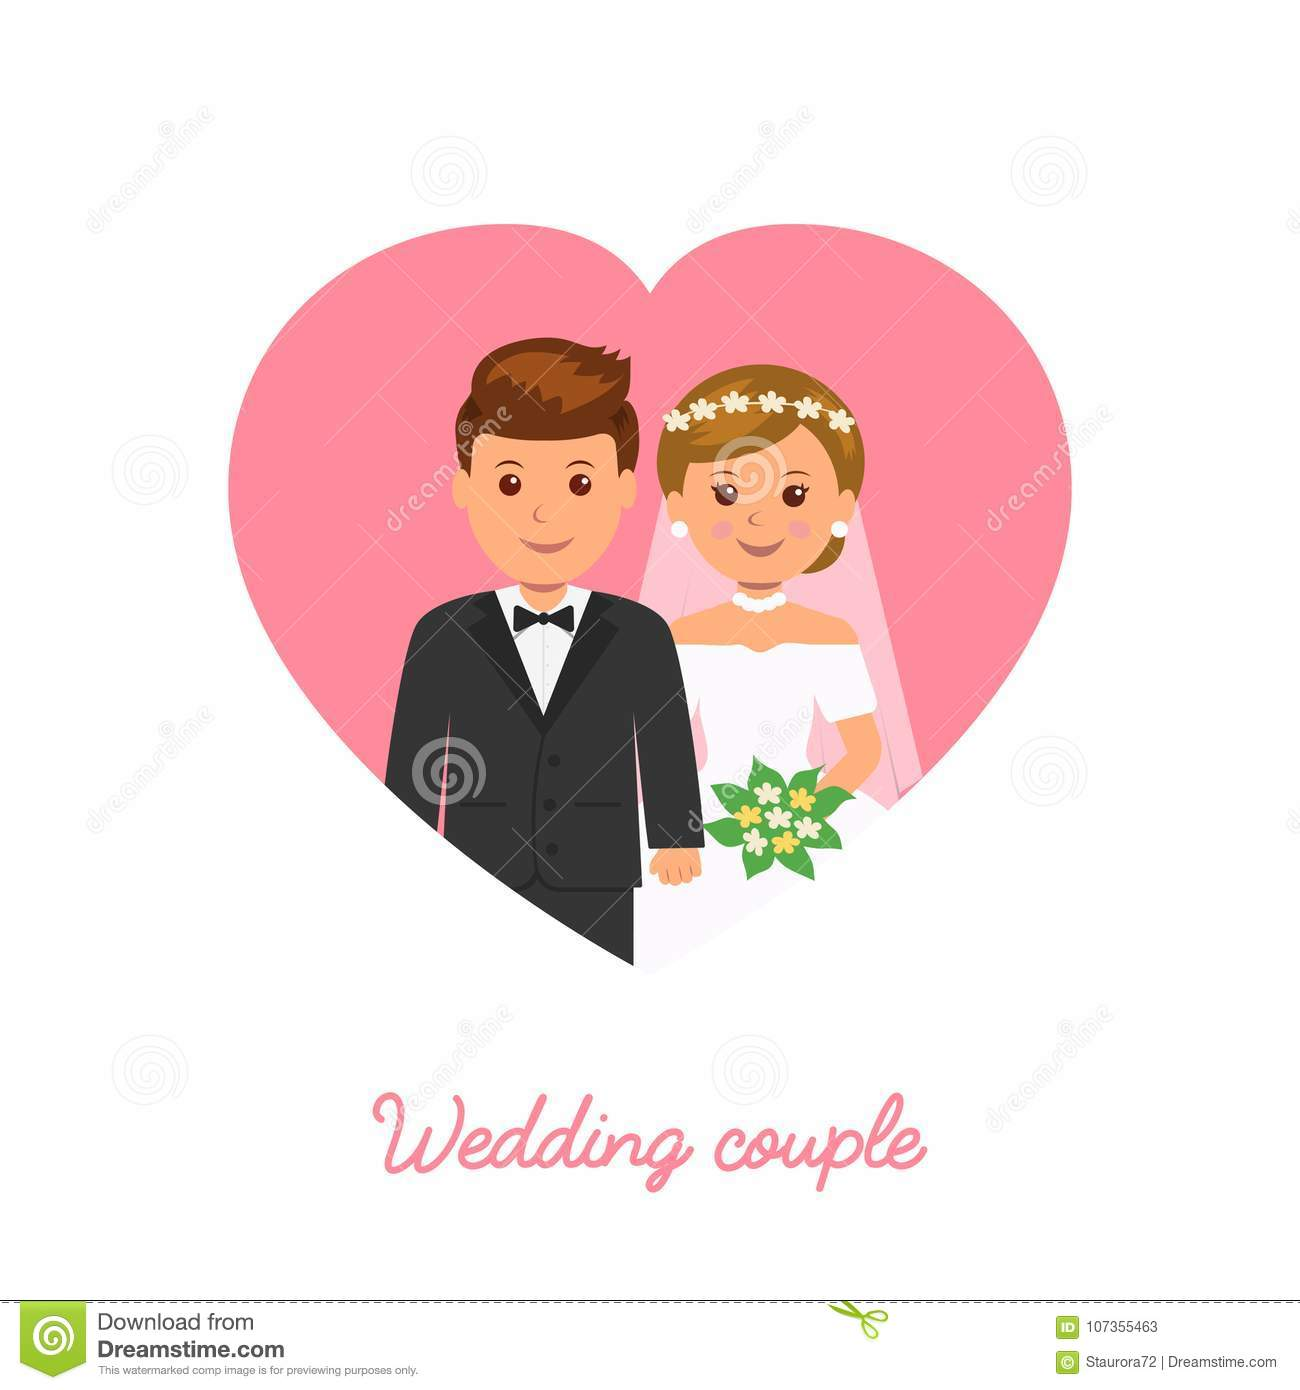 Married couple wedding icon marriage invitation stock vector download married couple wedding icon marriage invitation stock vector illustration of love stopboris Images